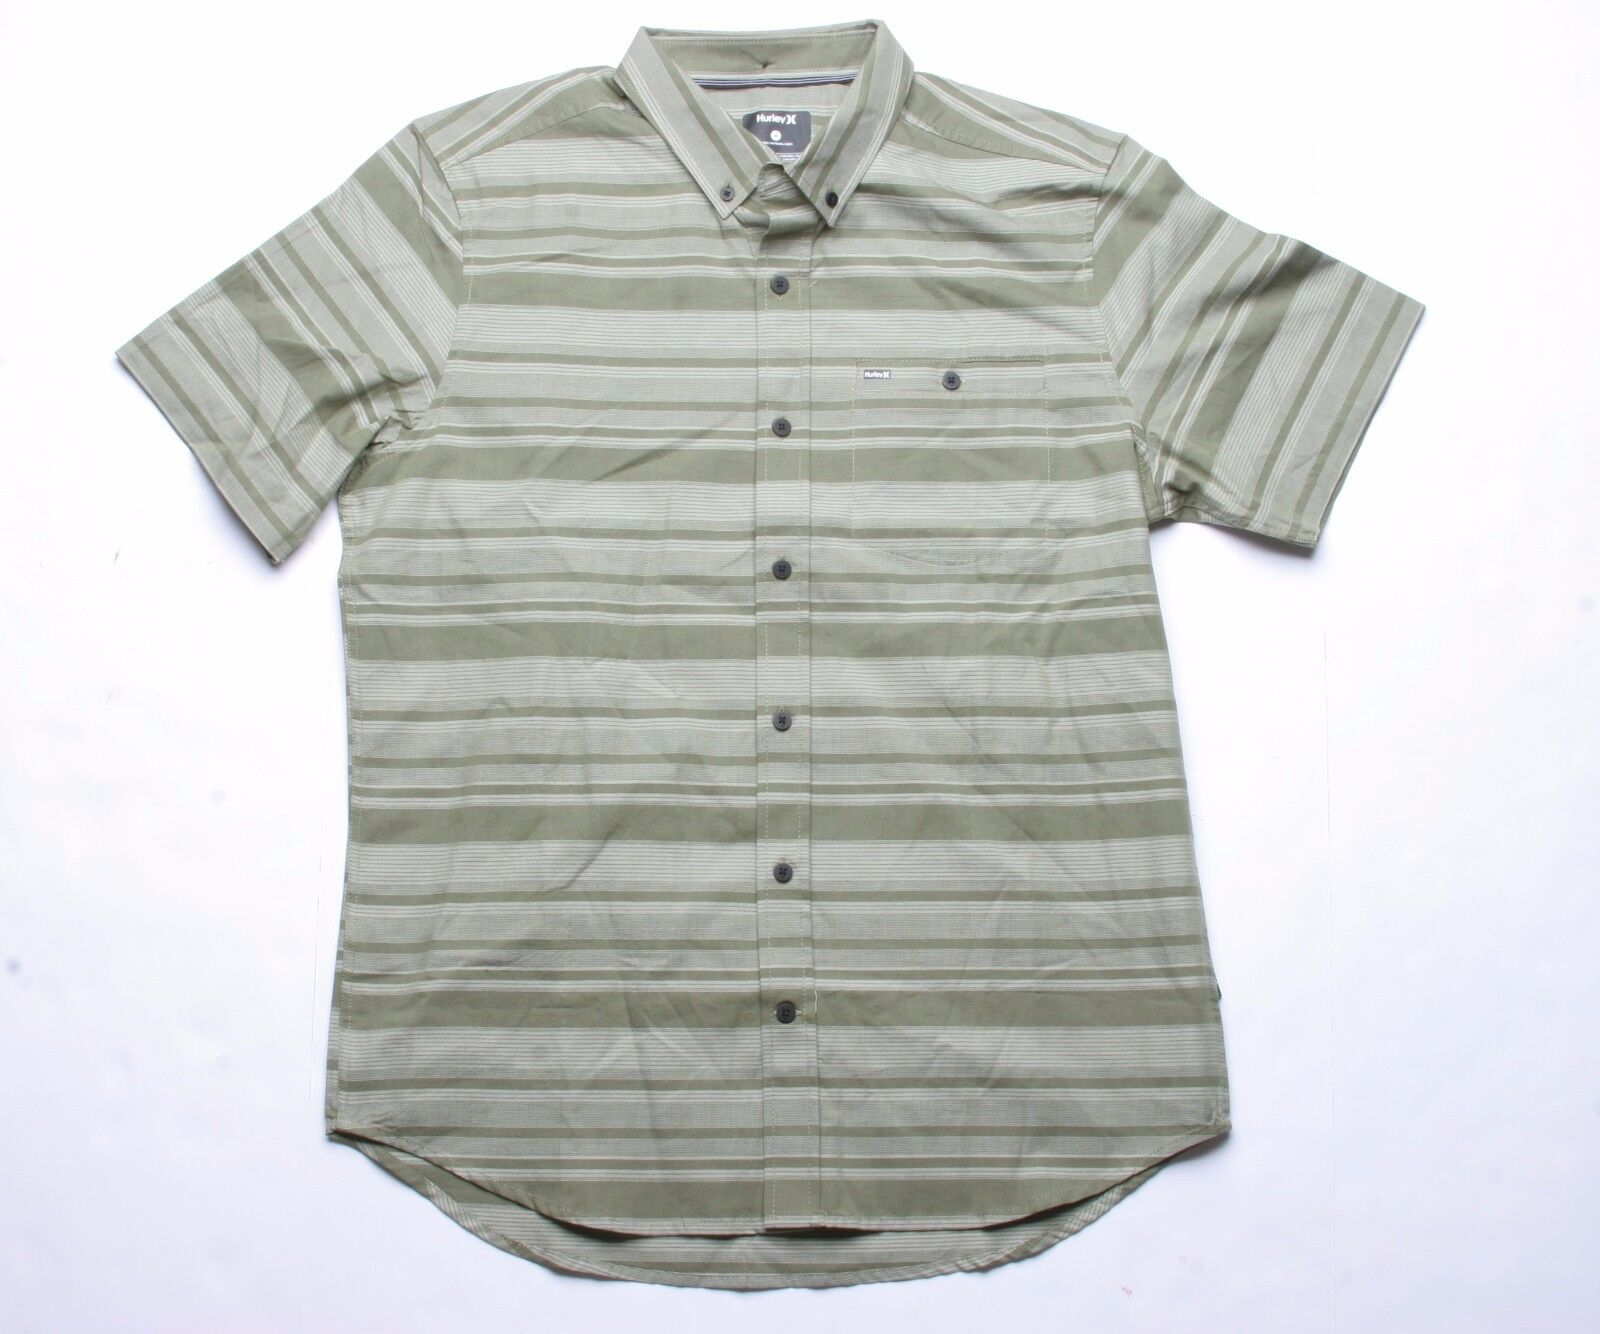 Hurley Fredh Woven Shirt (Green) M